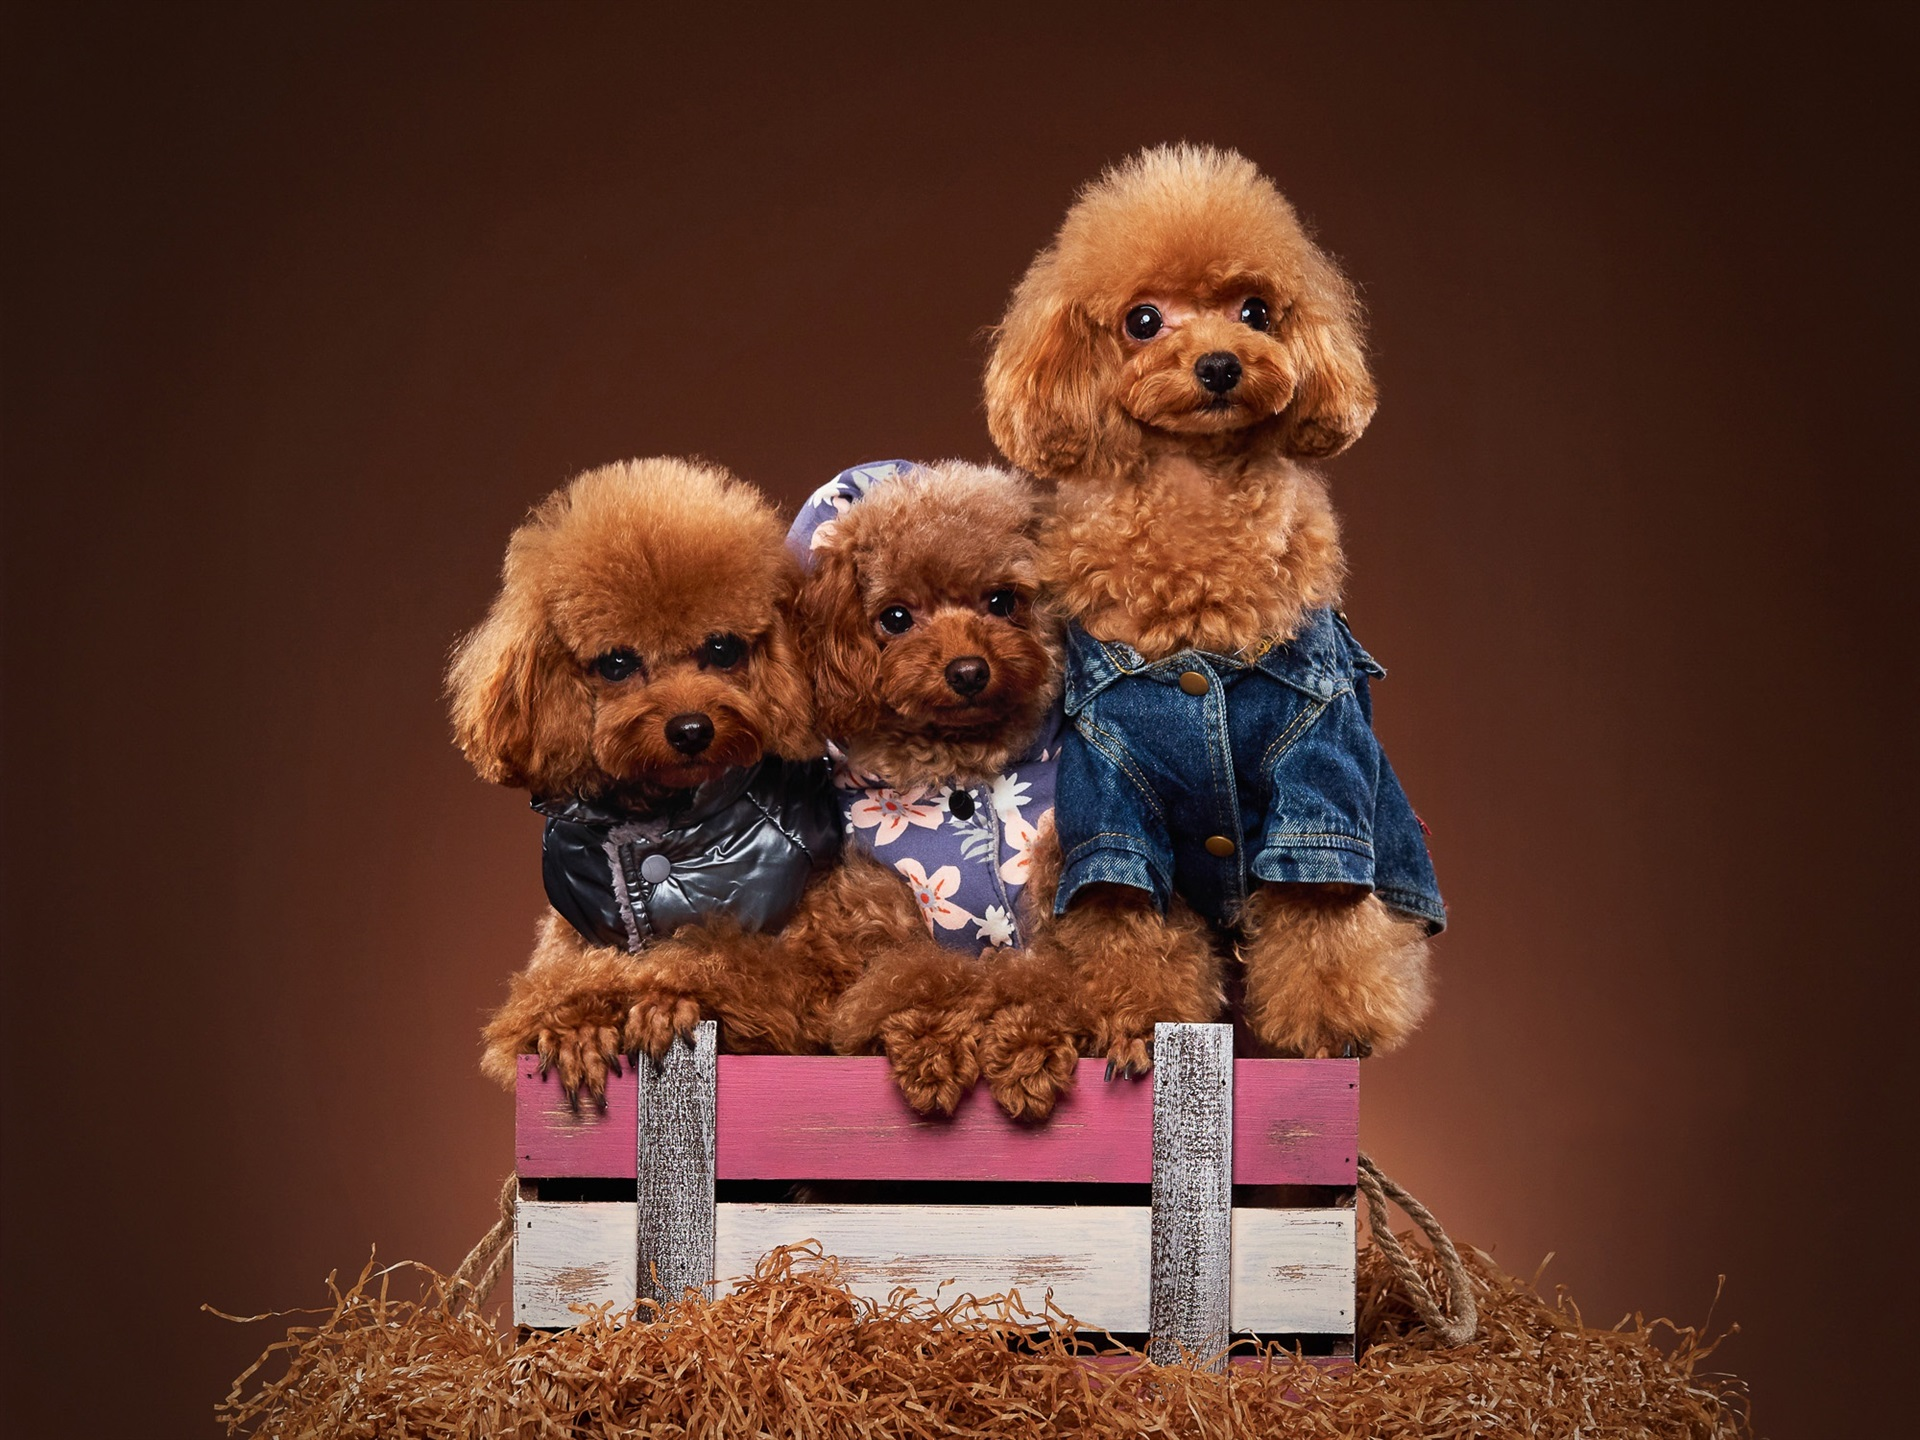 Wallpaper Three Poodles Puppies 1920x1440 Hd Picture Image